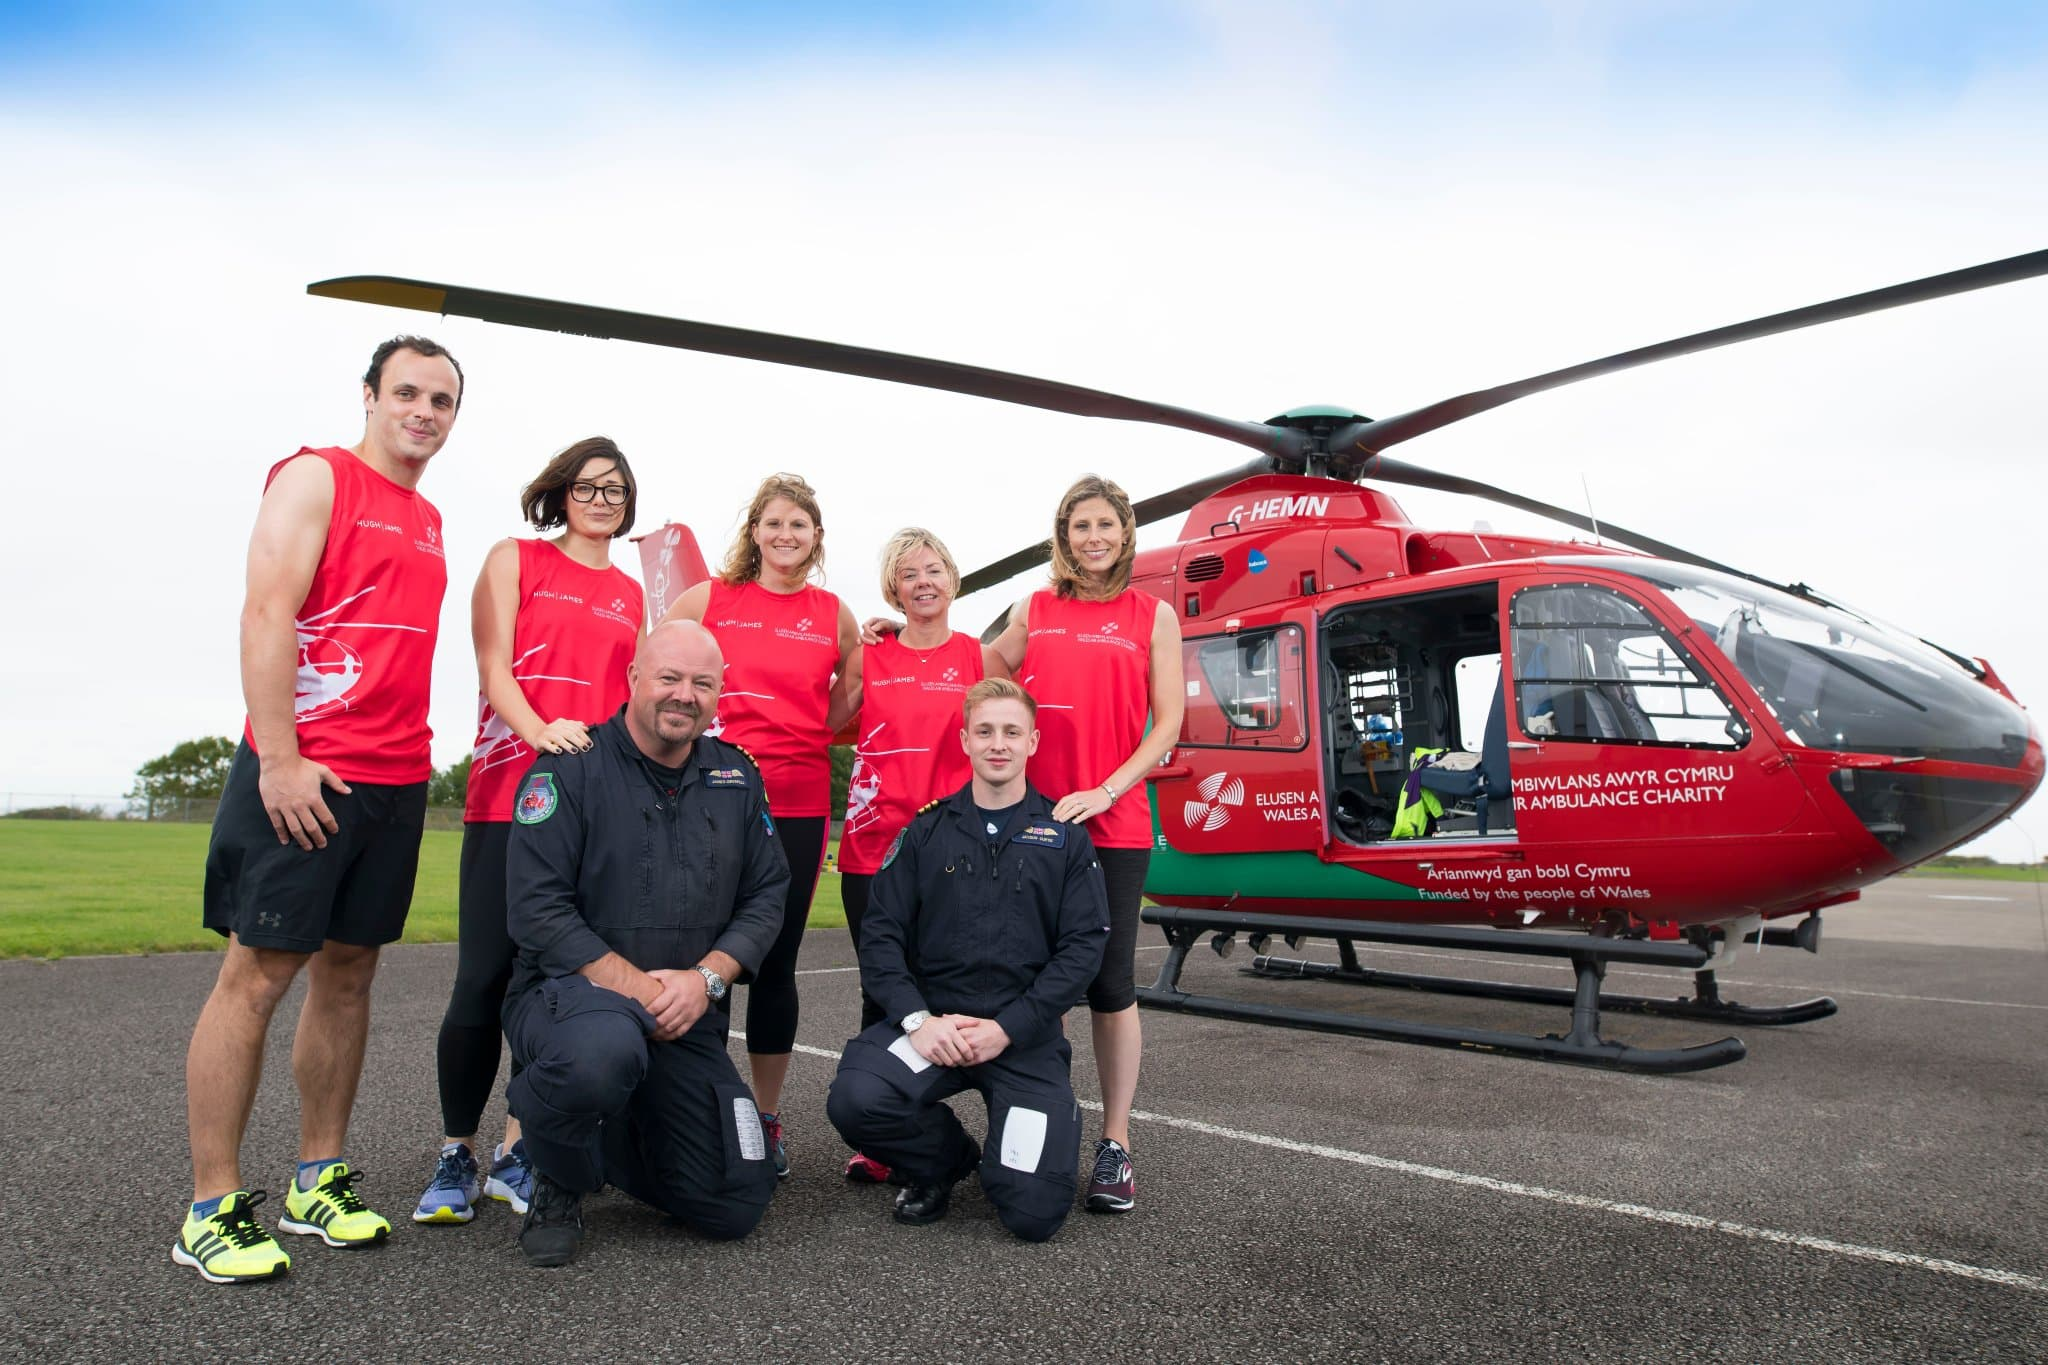 Hugh James Wales Air Ambulance